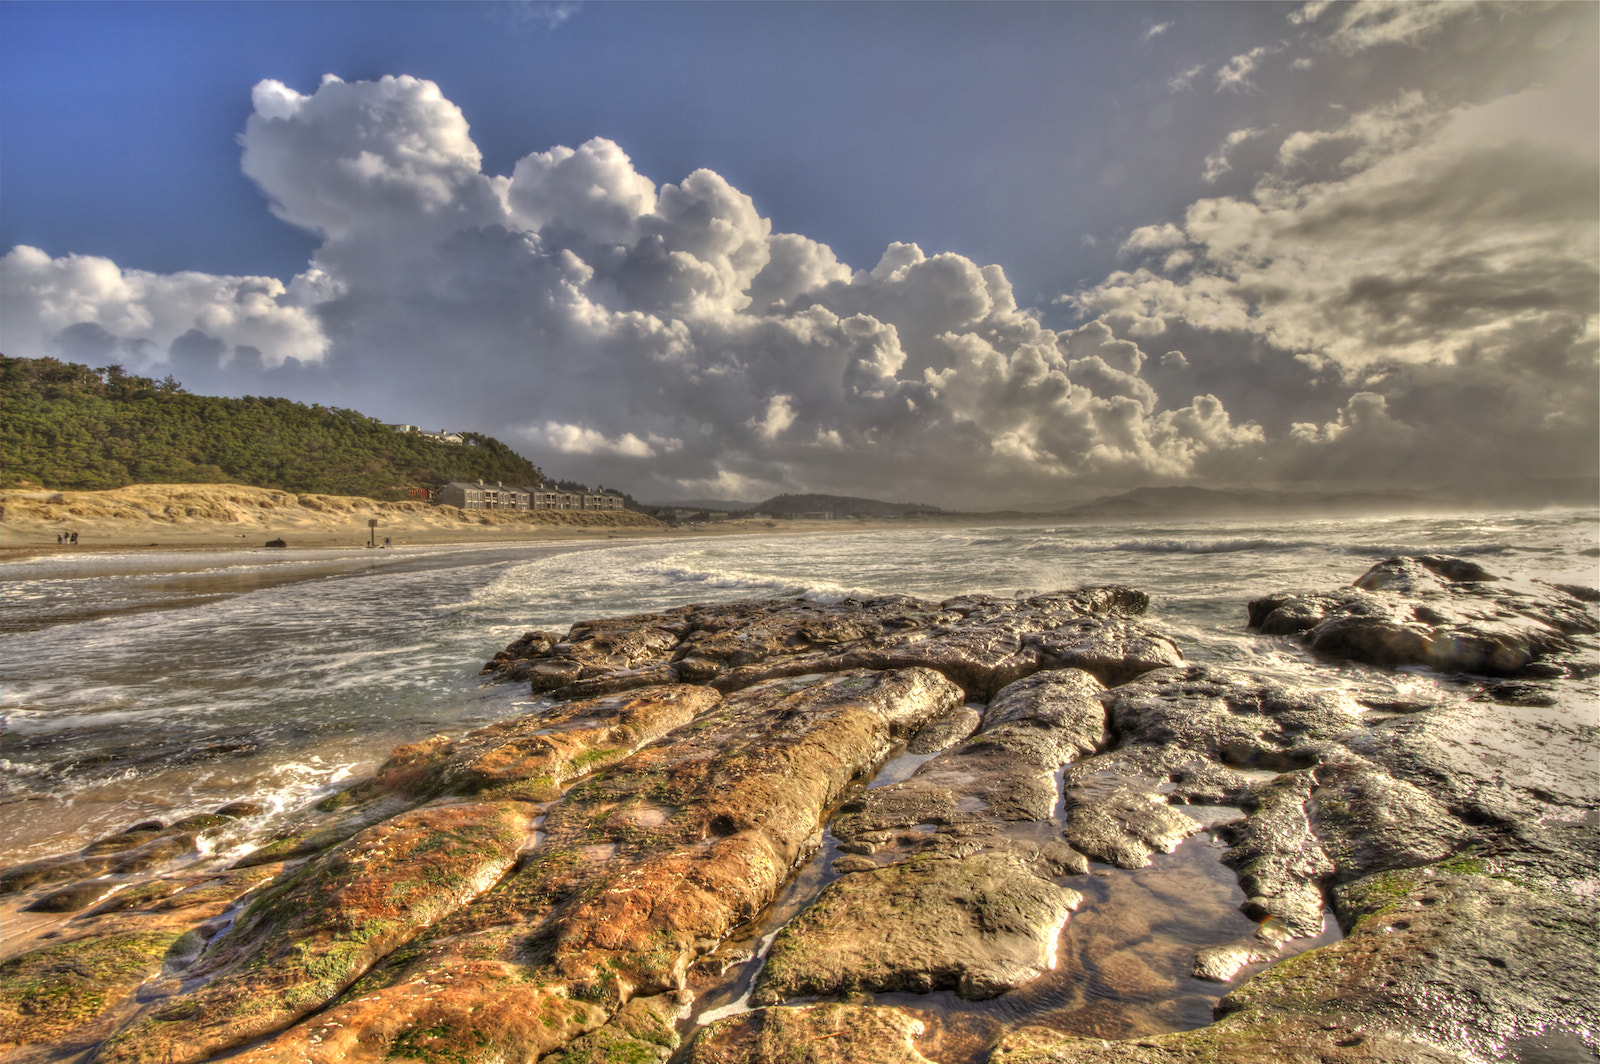 Photograph Land, Sea and Sky by Paul Garrett on 500px